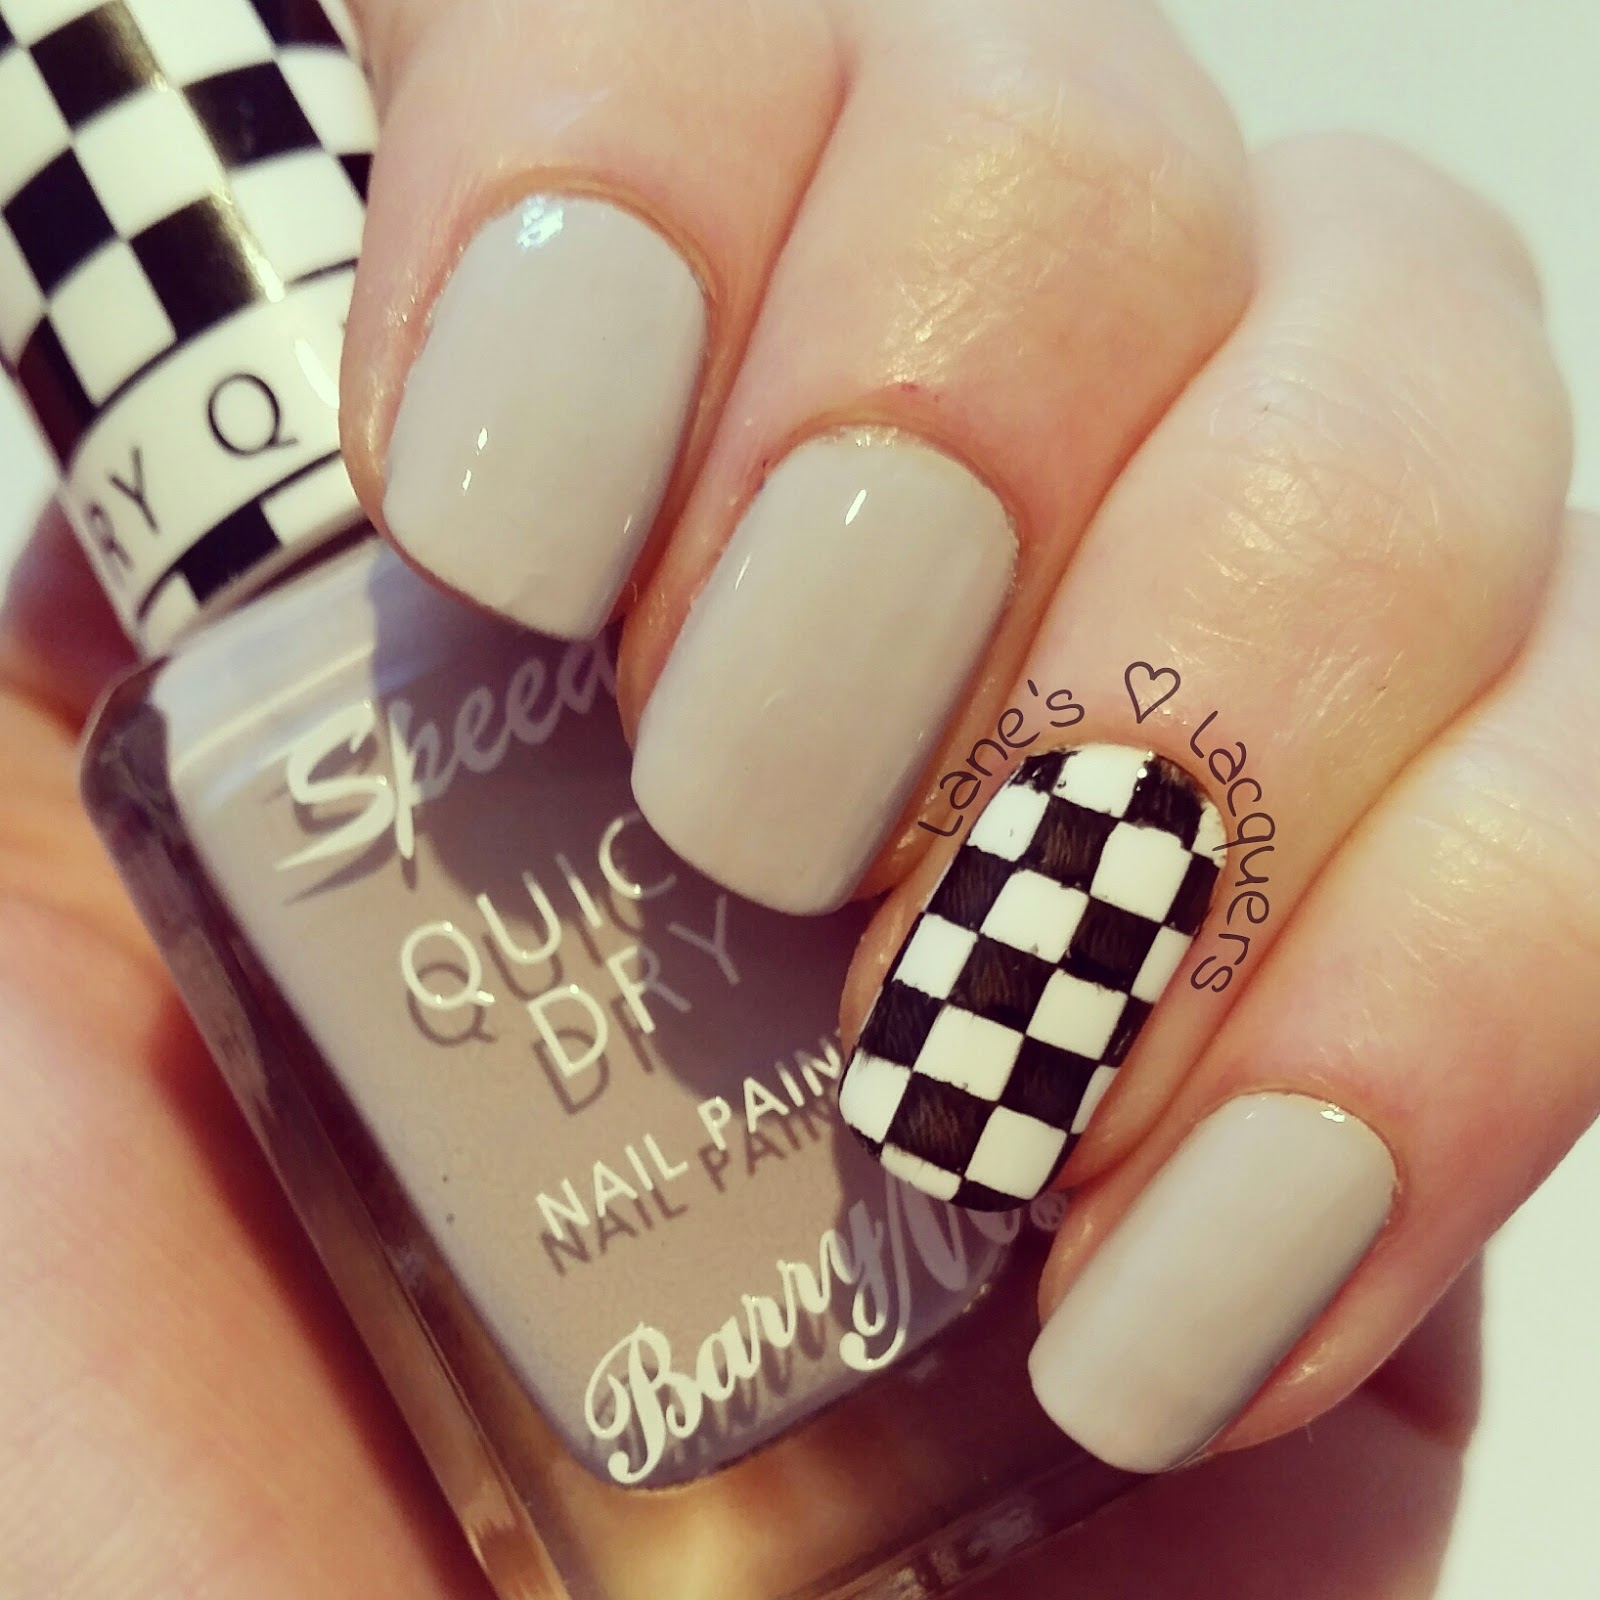 new-barry-m-speedy-quick-dry-pit-stop-swatch-manicure (2)